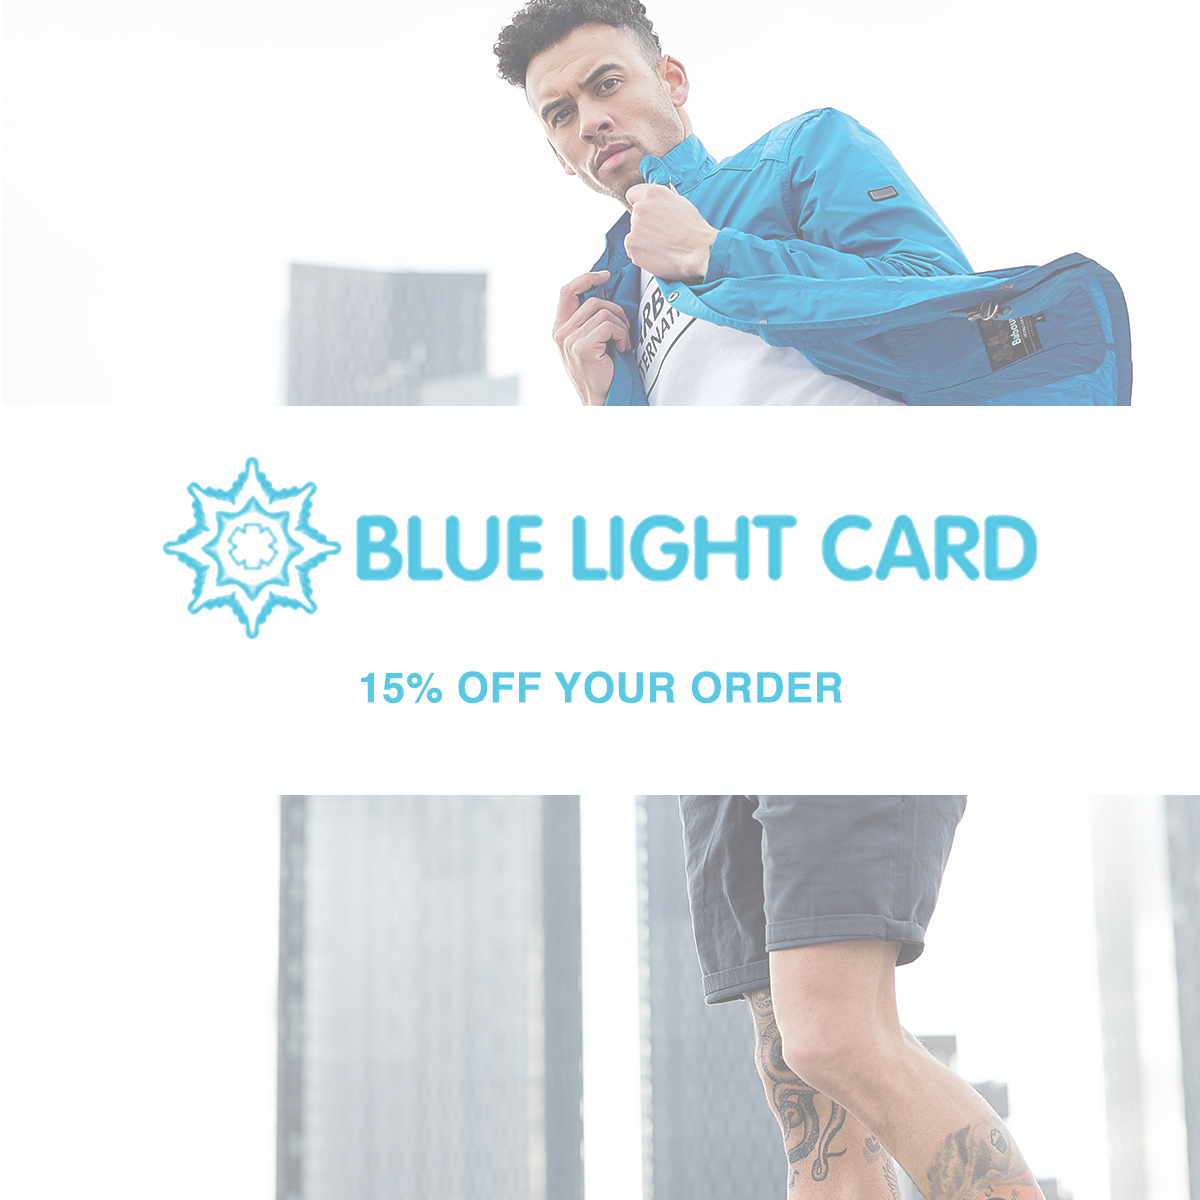 A man is putting on a blue coat with the caption BLUE LIGHT CARD 15% OFF YOUR ORDER is displayed in front of him.